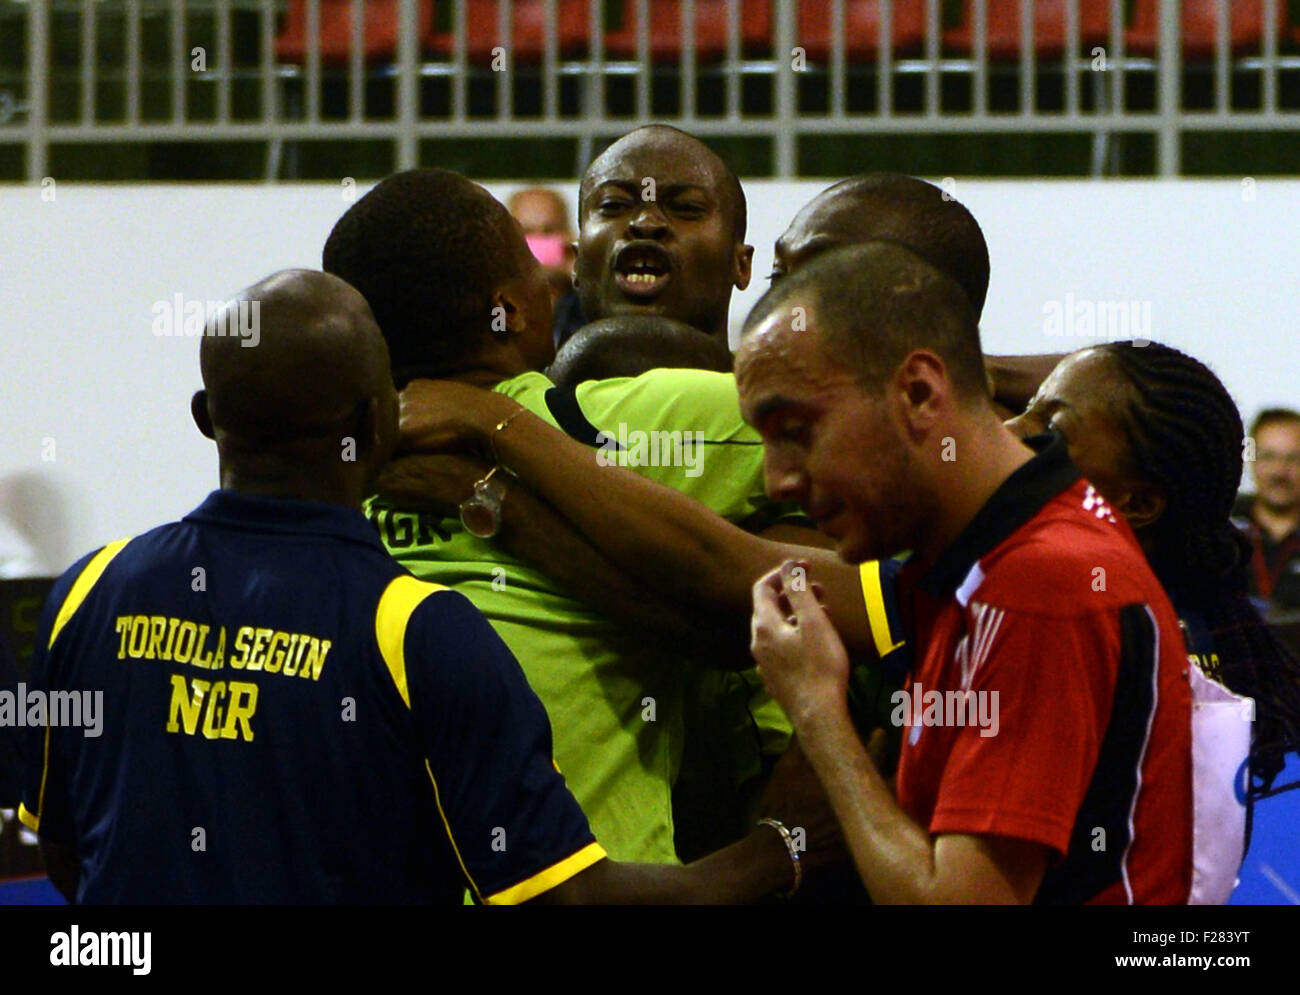 (1509014) -- BRAZZAVILLE, Sept. 14, 2015(Xinhua) -- Players of Nigeria celebrate their victory over Egypt during - Stock Image